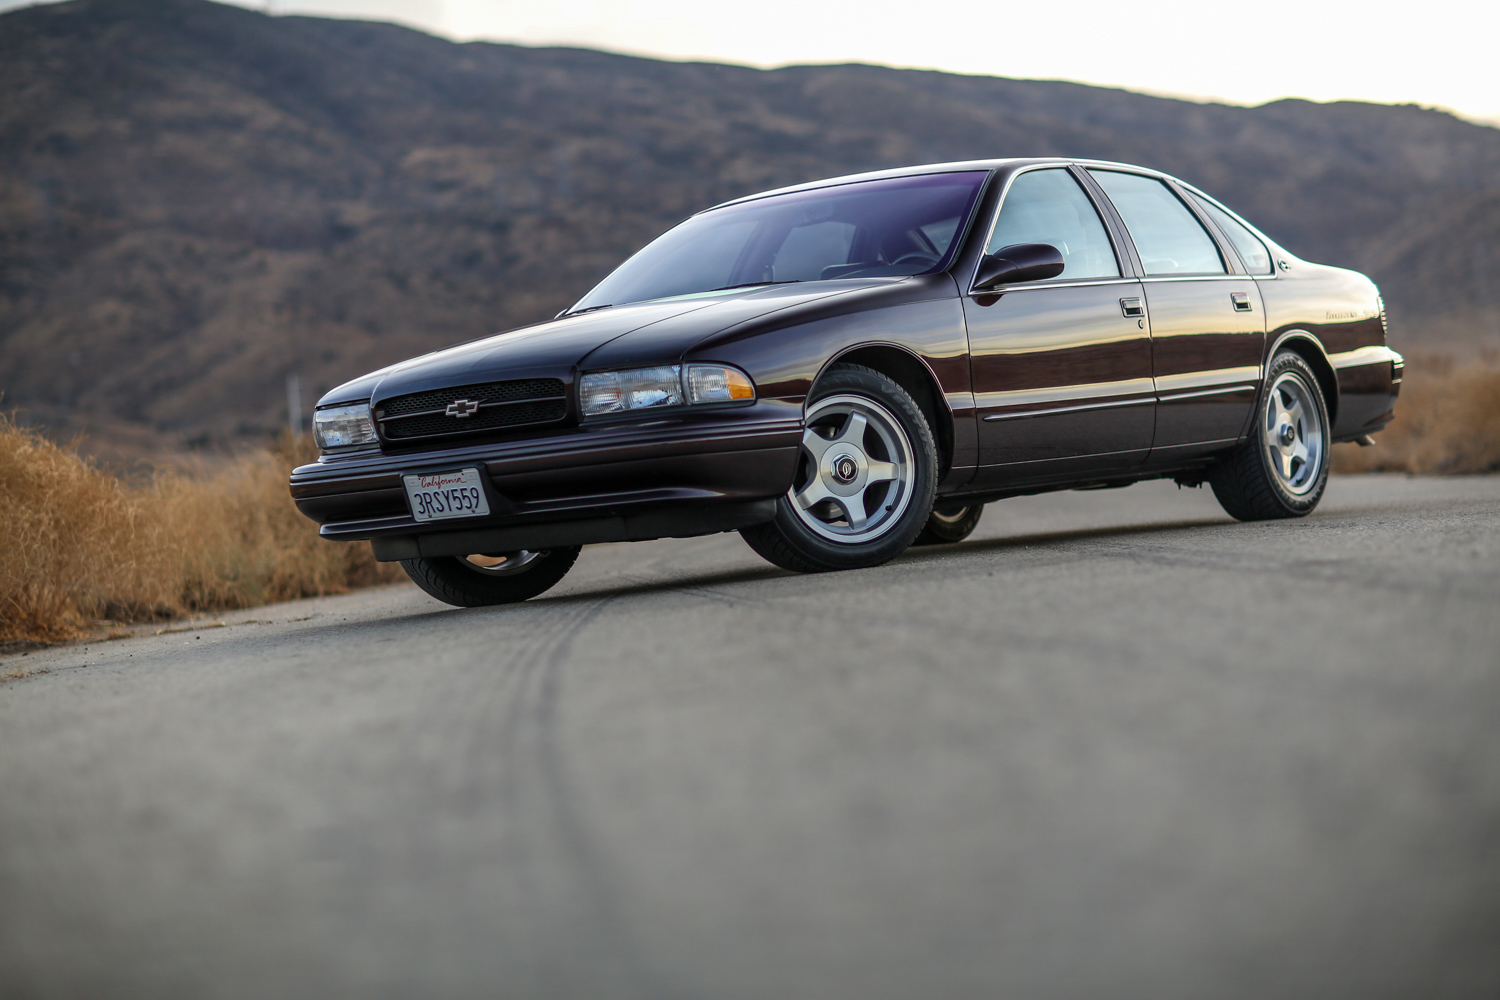 1996 Chevrolet Impala SS low 3/4 front